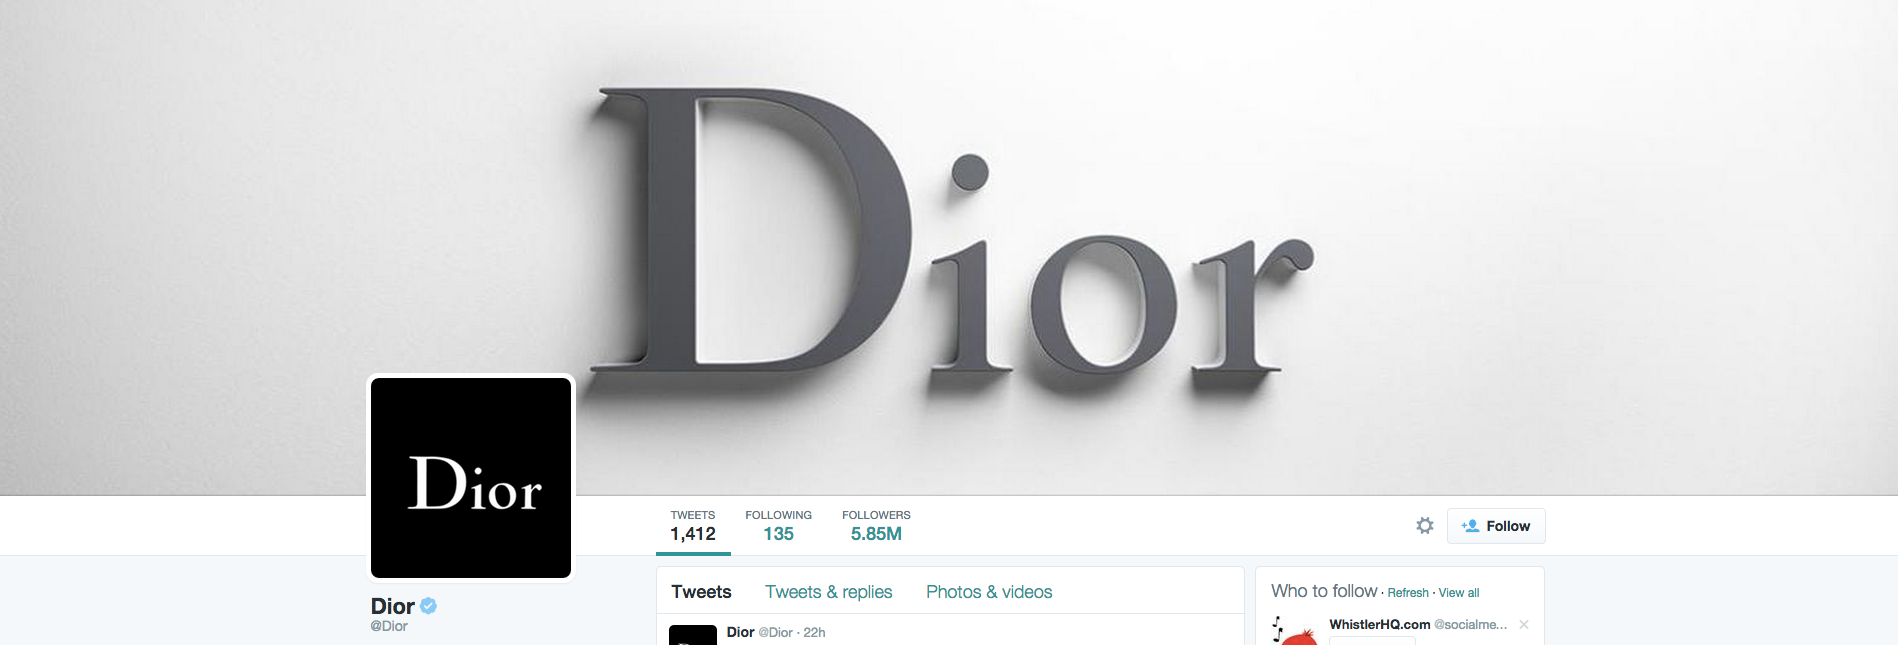 Dior_Twitter.png